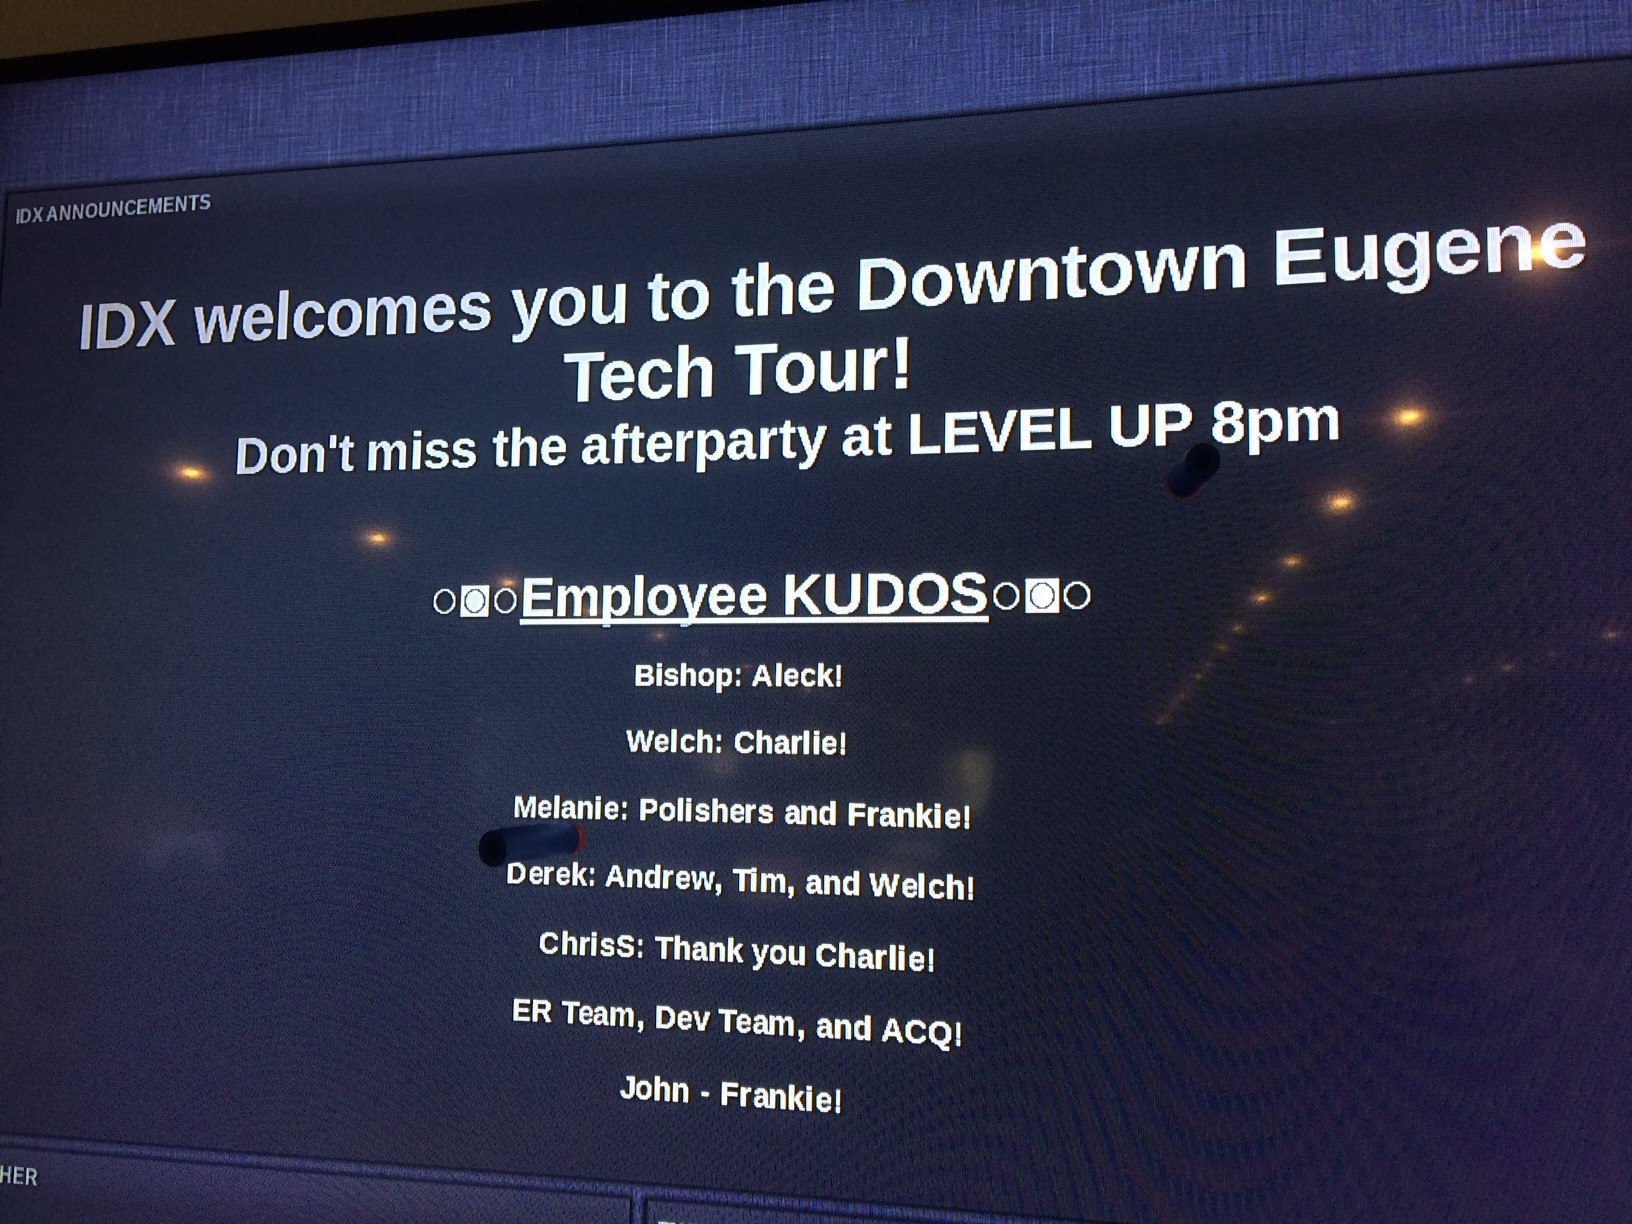 The Downtown Eugene Tech Tour kicks off at 5 p.m. in Broadway Plaza downtown September 21. From 5:30 p.m. to 8 p.m., registered participants can tour dozens of local tech companies in Eugene. (SBG)